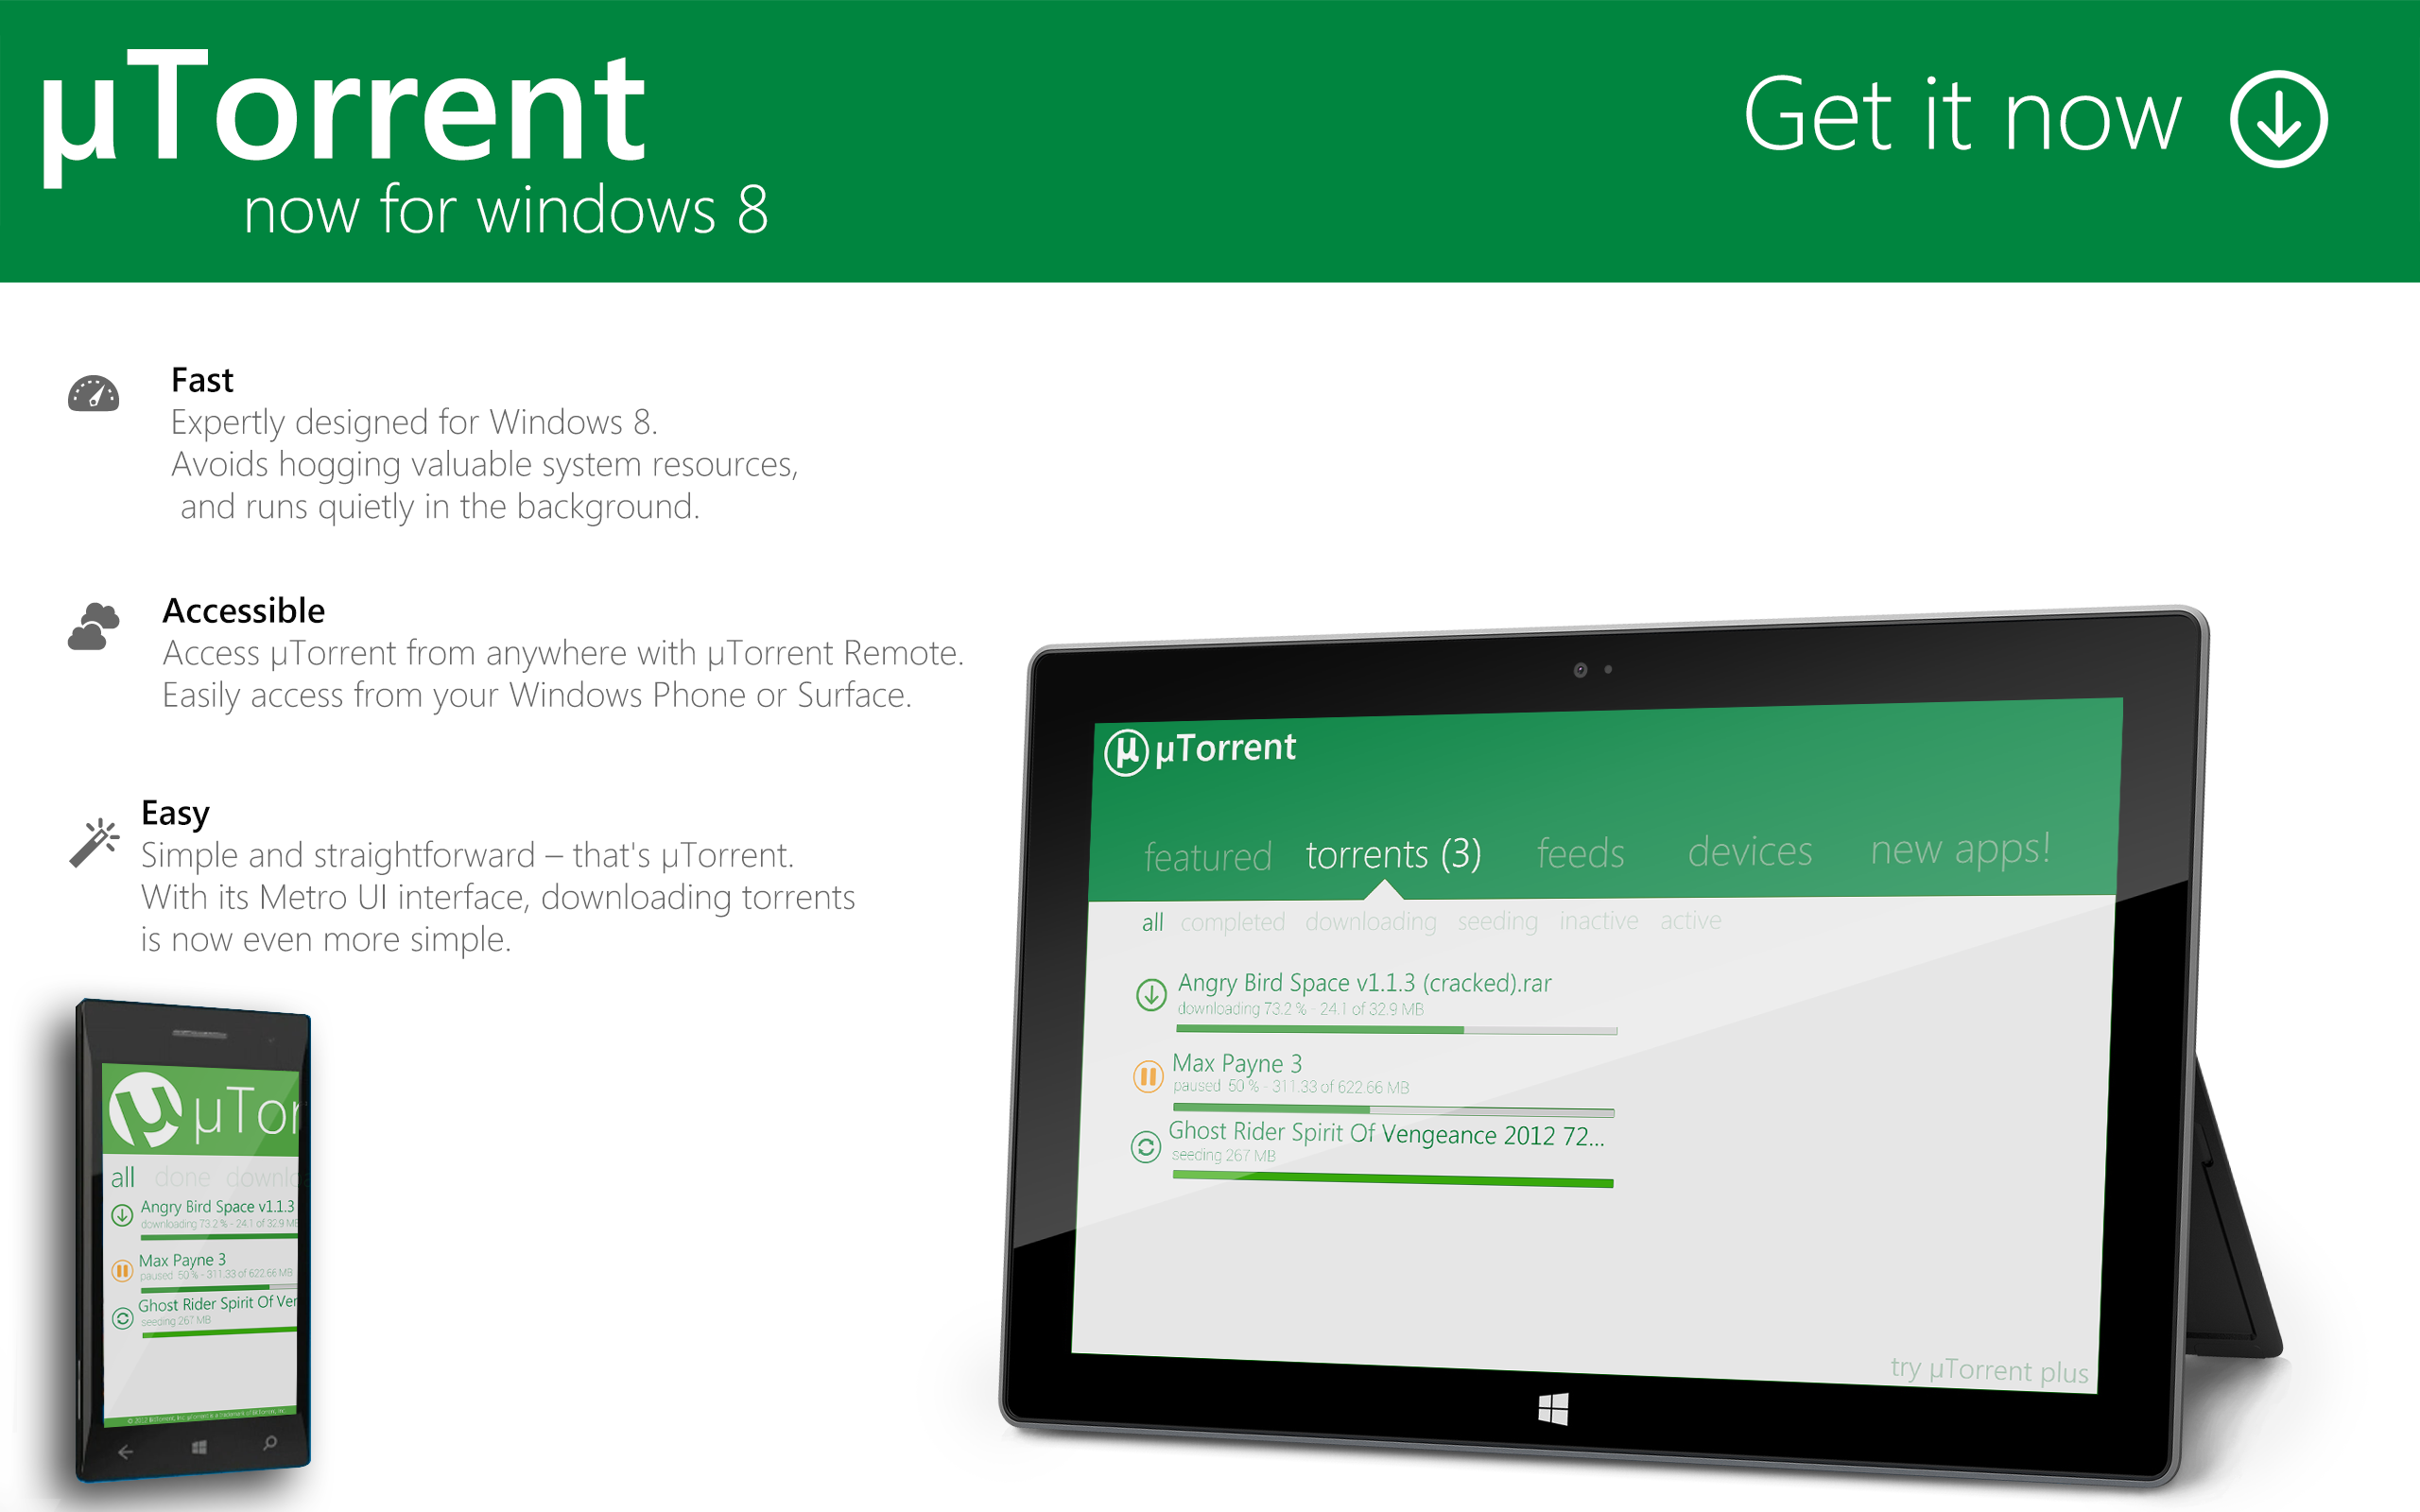 uTorrent : Windows 8 Ad by Brebenel-Silviu